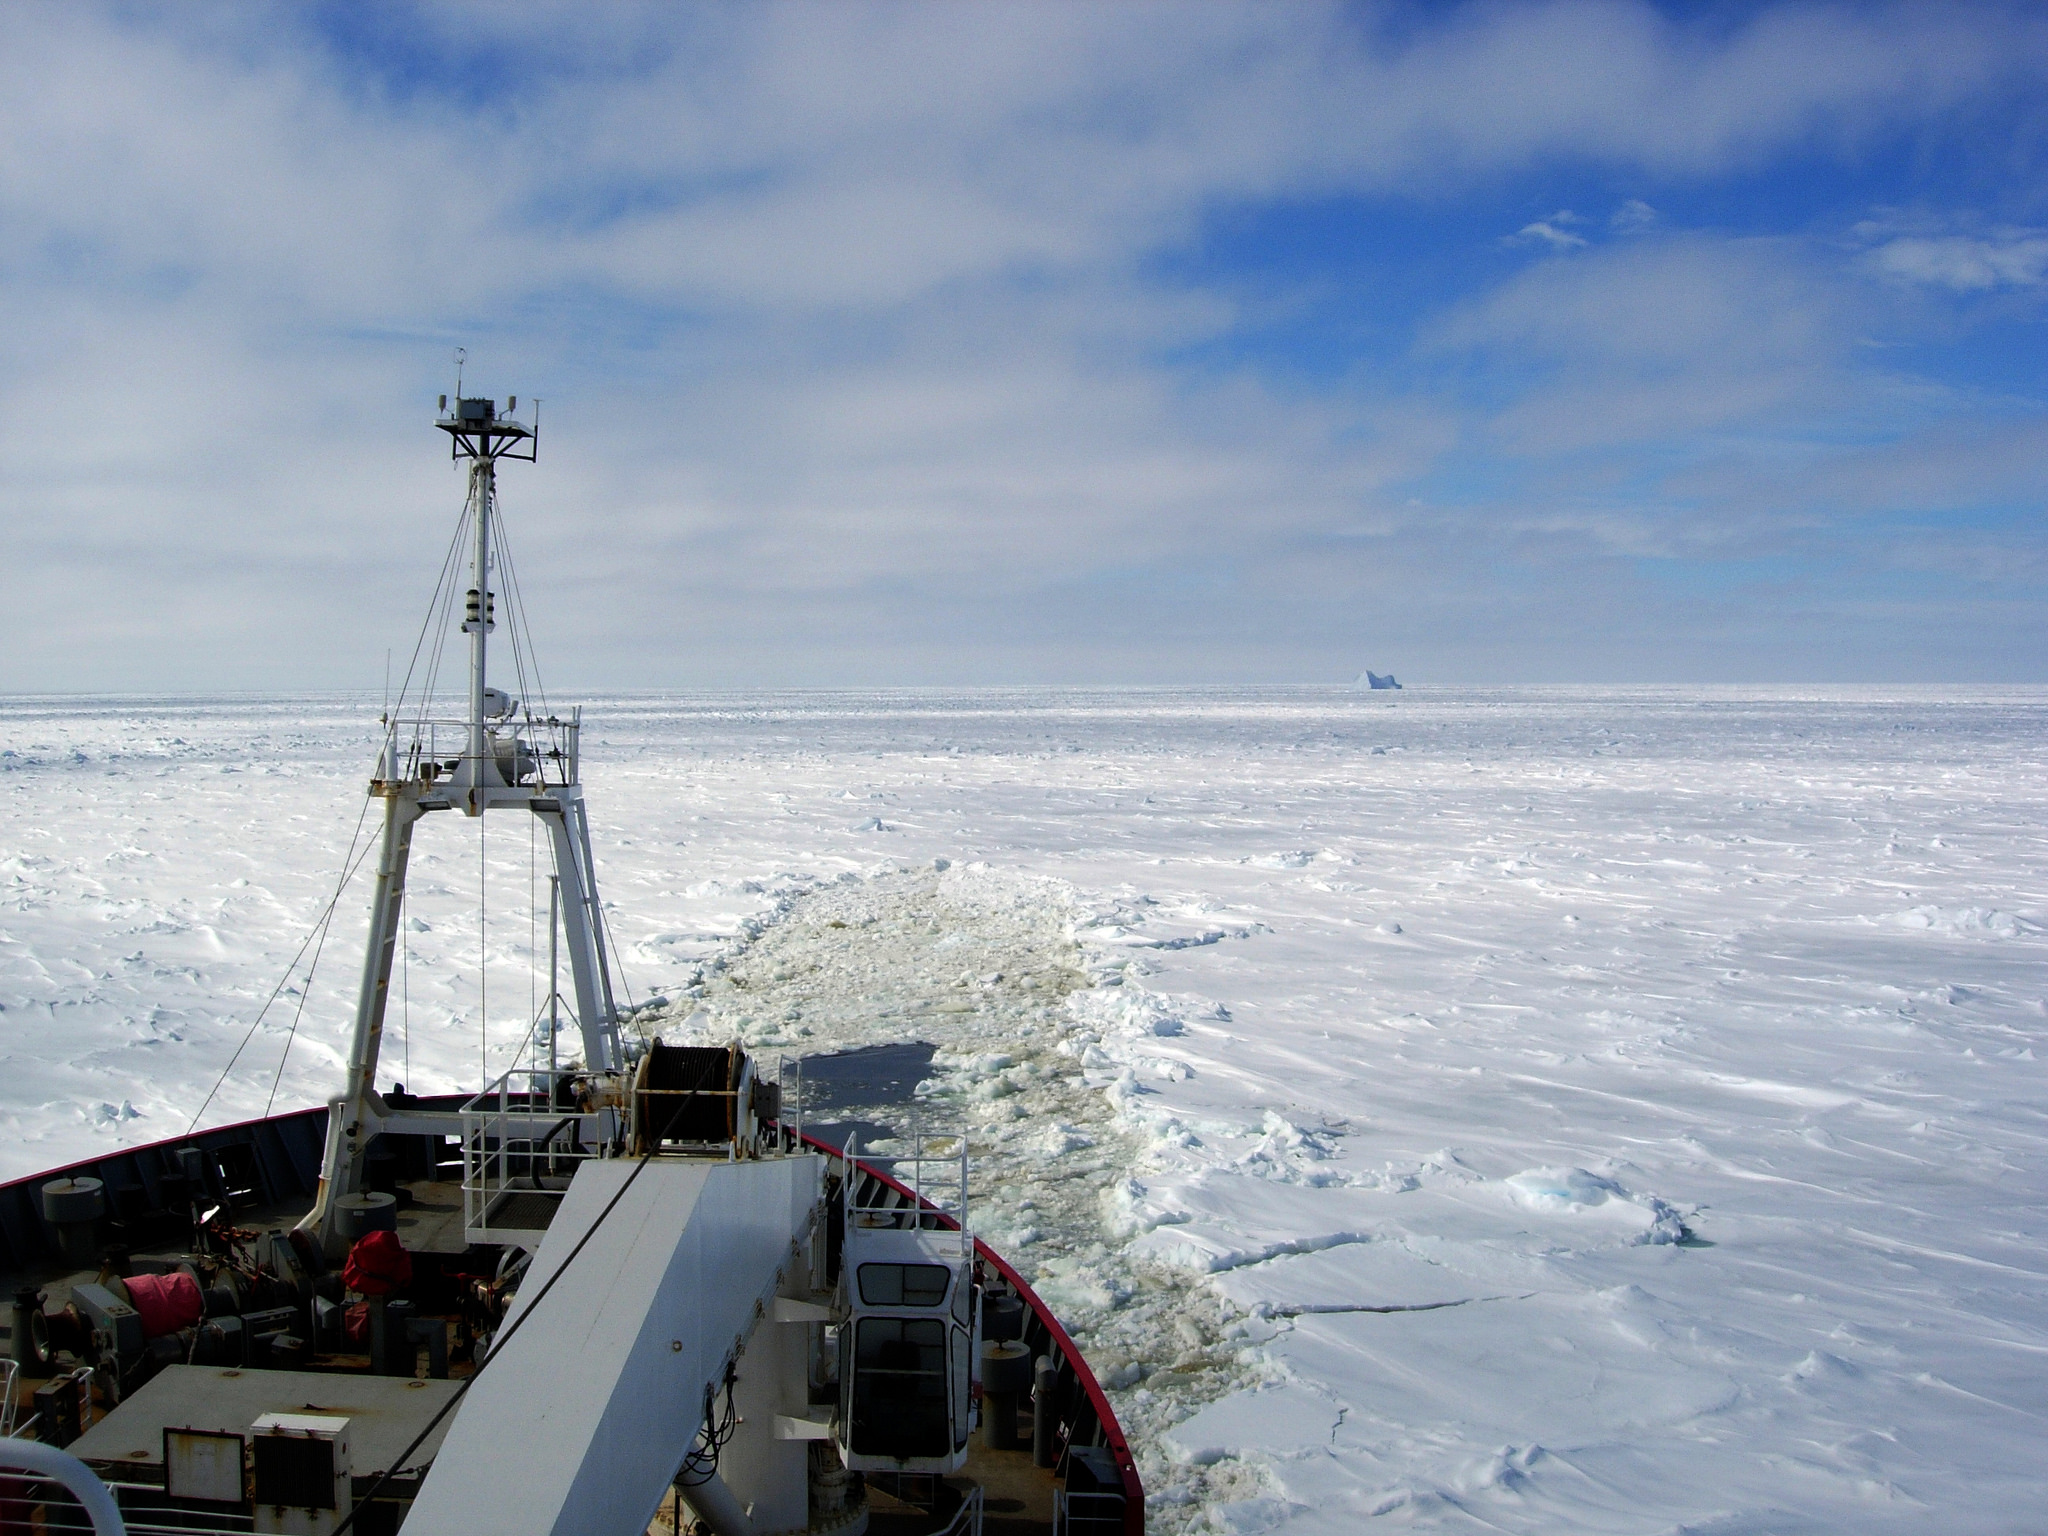 Breaking Antarctic sea ice on the RRS James Clark Ross.